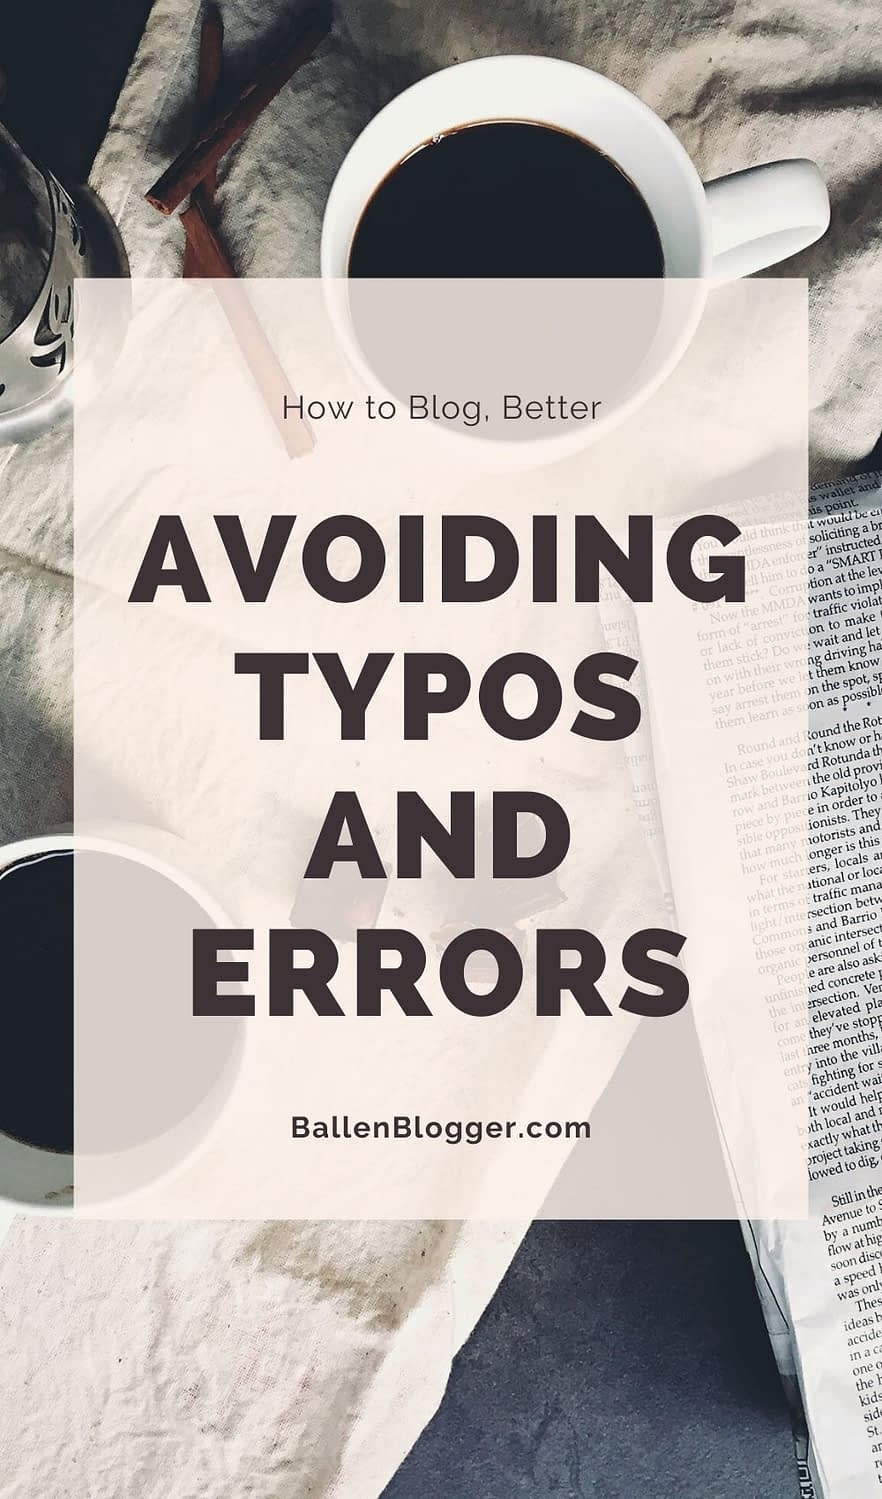 Whether you're writing an article, a blog post, a product description or any other type of digital content, you should use caution to ensure it's free of typos and errors before publishing it on your website.